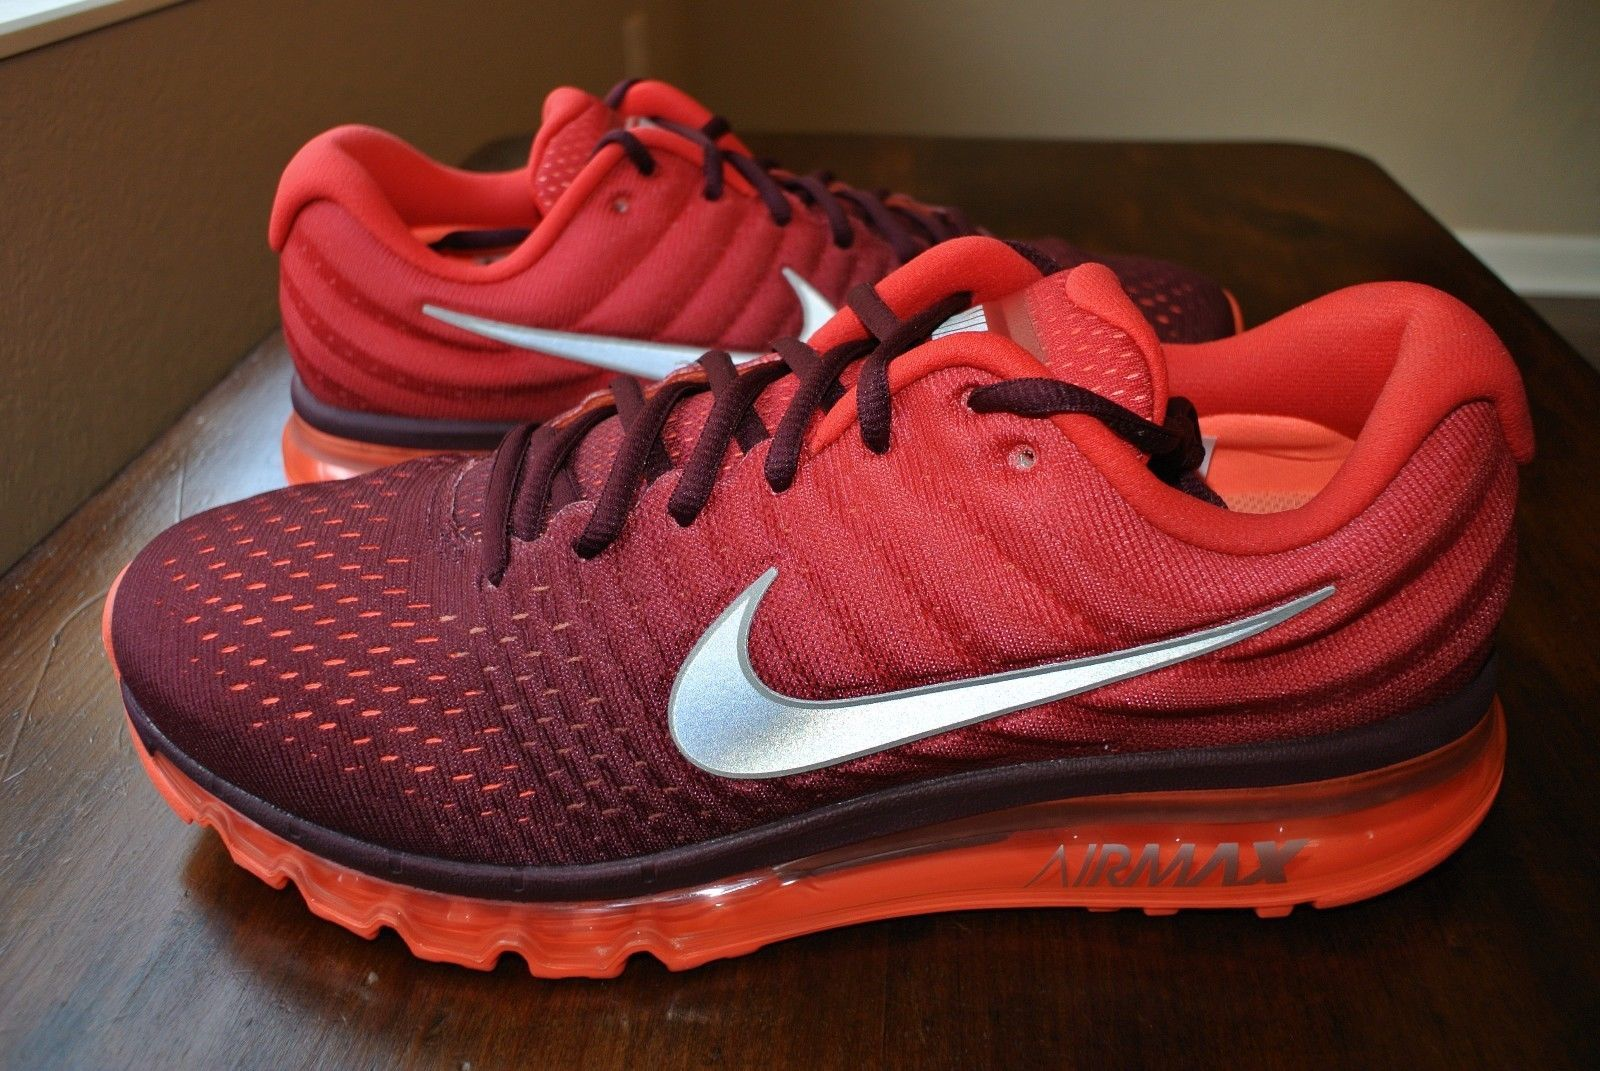 separation shoes 6aba6 3229d 57. 57. Previous. NIKE AIR MAX 2017 NIGHT MAROON WHITE GYM RED 849559 601  US MENS SHOE SIZE 13